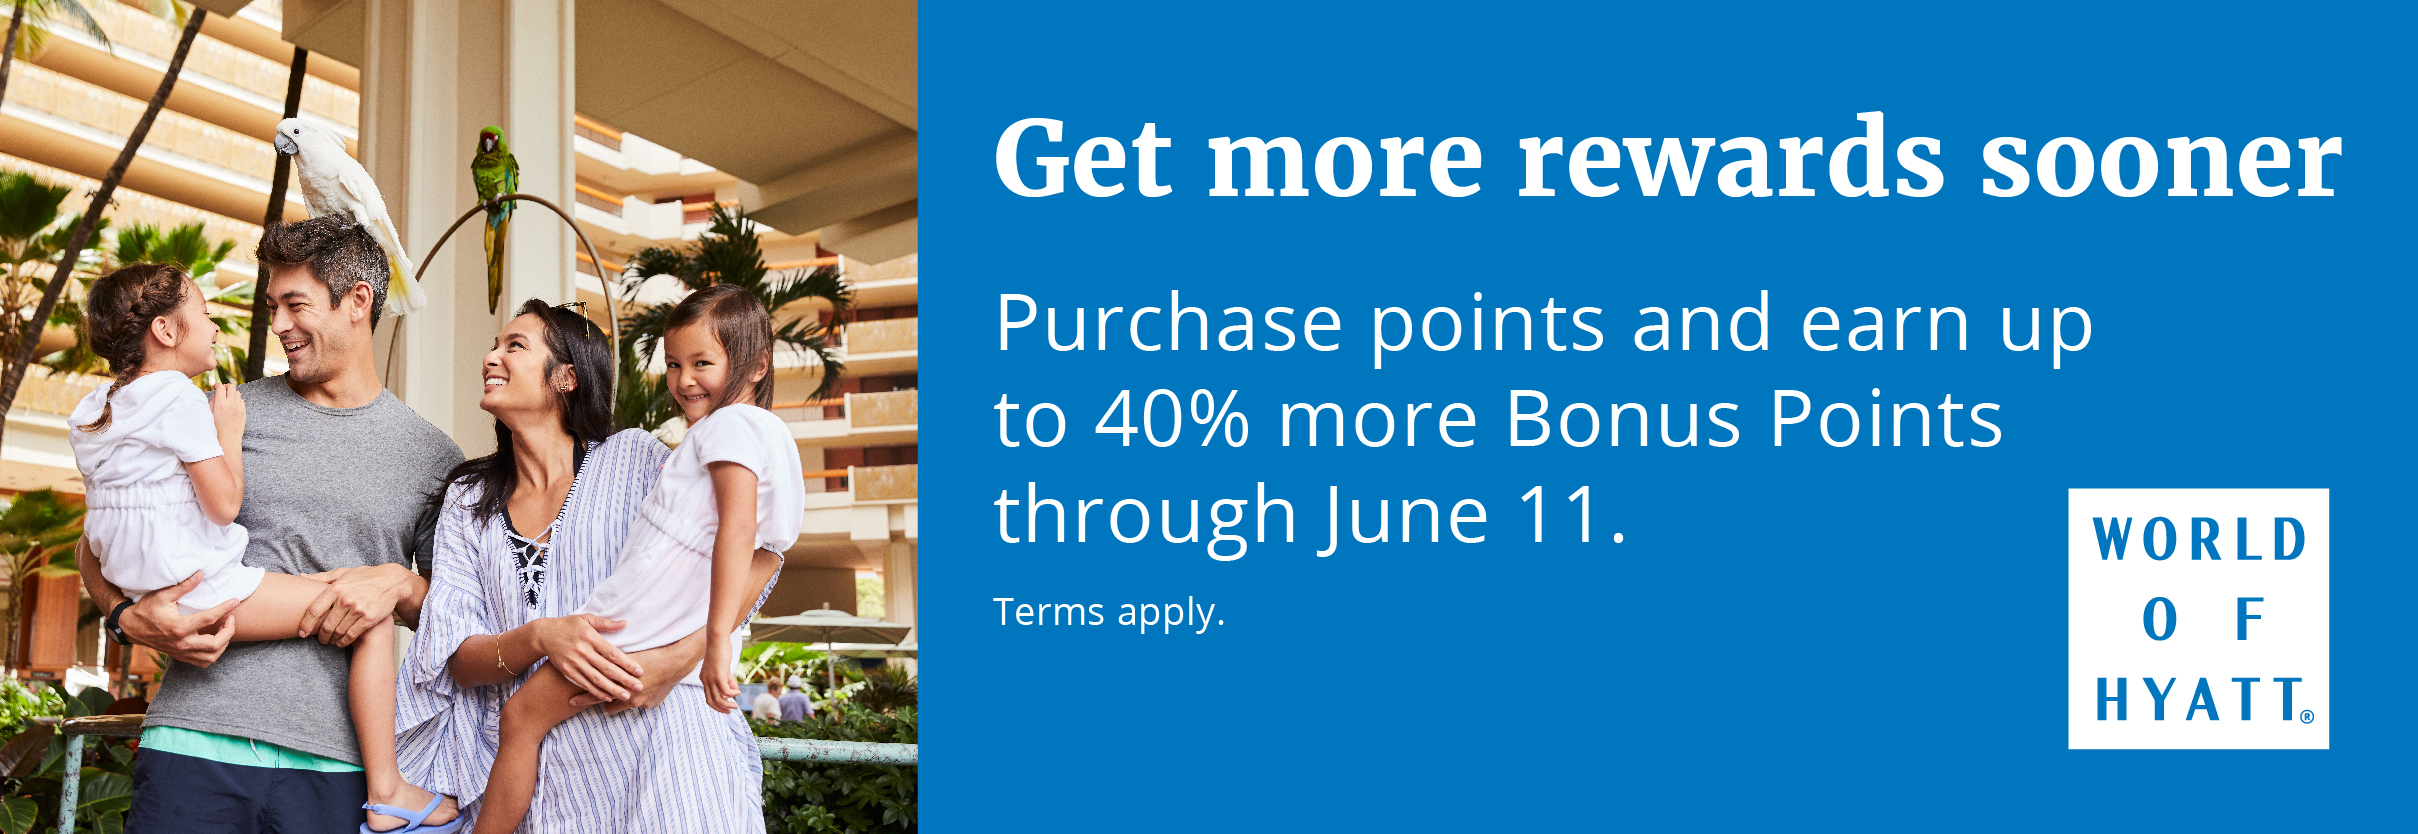 Get more rewards sooner. Purchase points and earn up to 40% more Bonus Points through June 11. Terms apply.